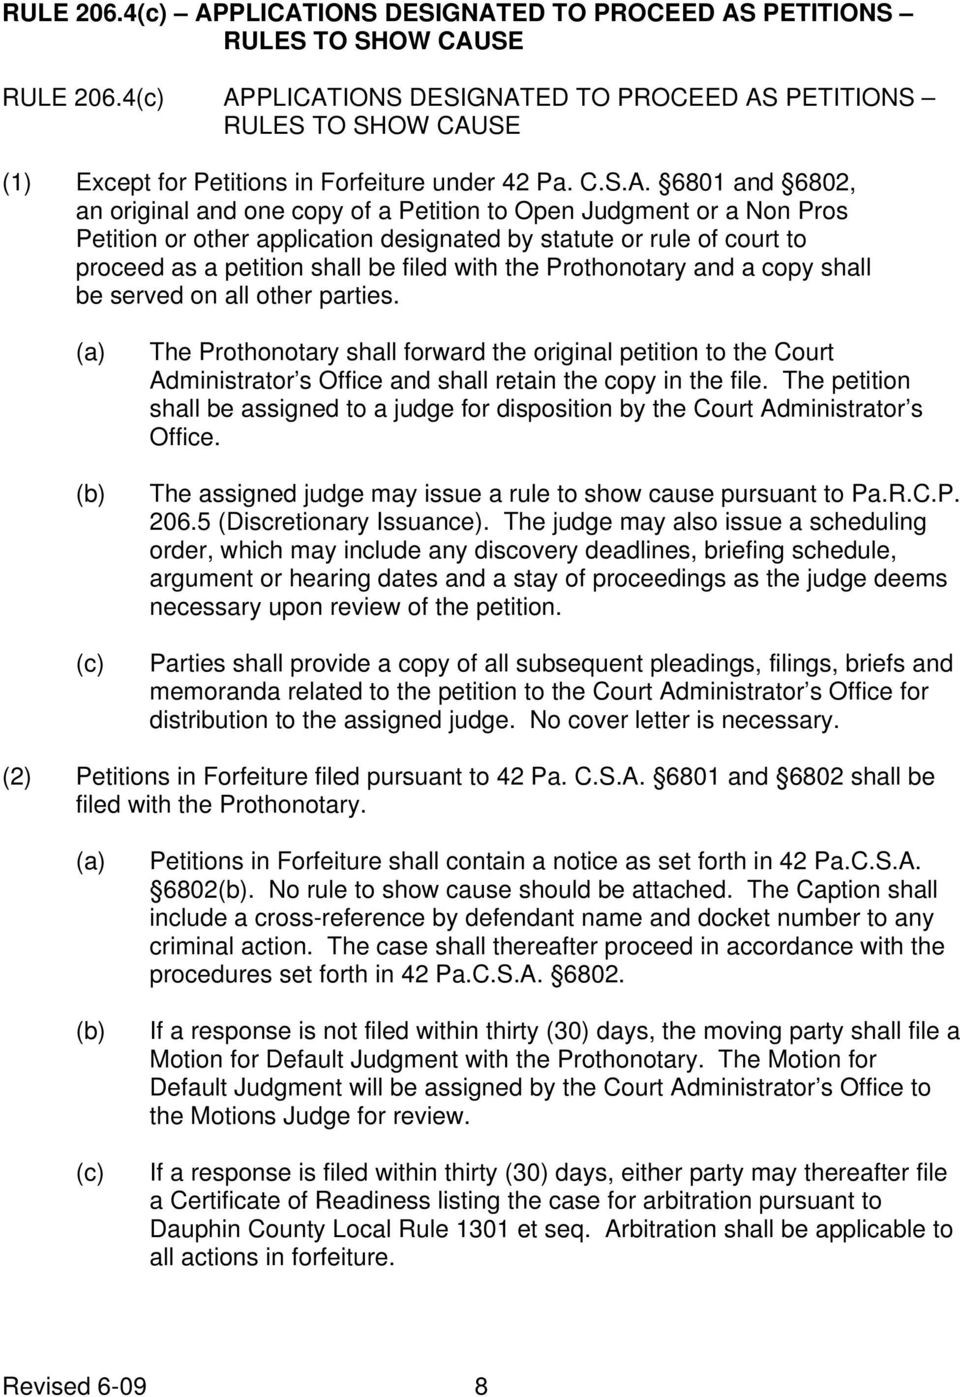 9 COMMENT: Rule 206.4(1)(4) Provides That Copies Of Subsequent Pleadings,  Filings, Briefs And Memoranda Are To Be Provided To The Court Administrator  S ...